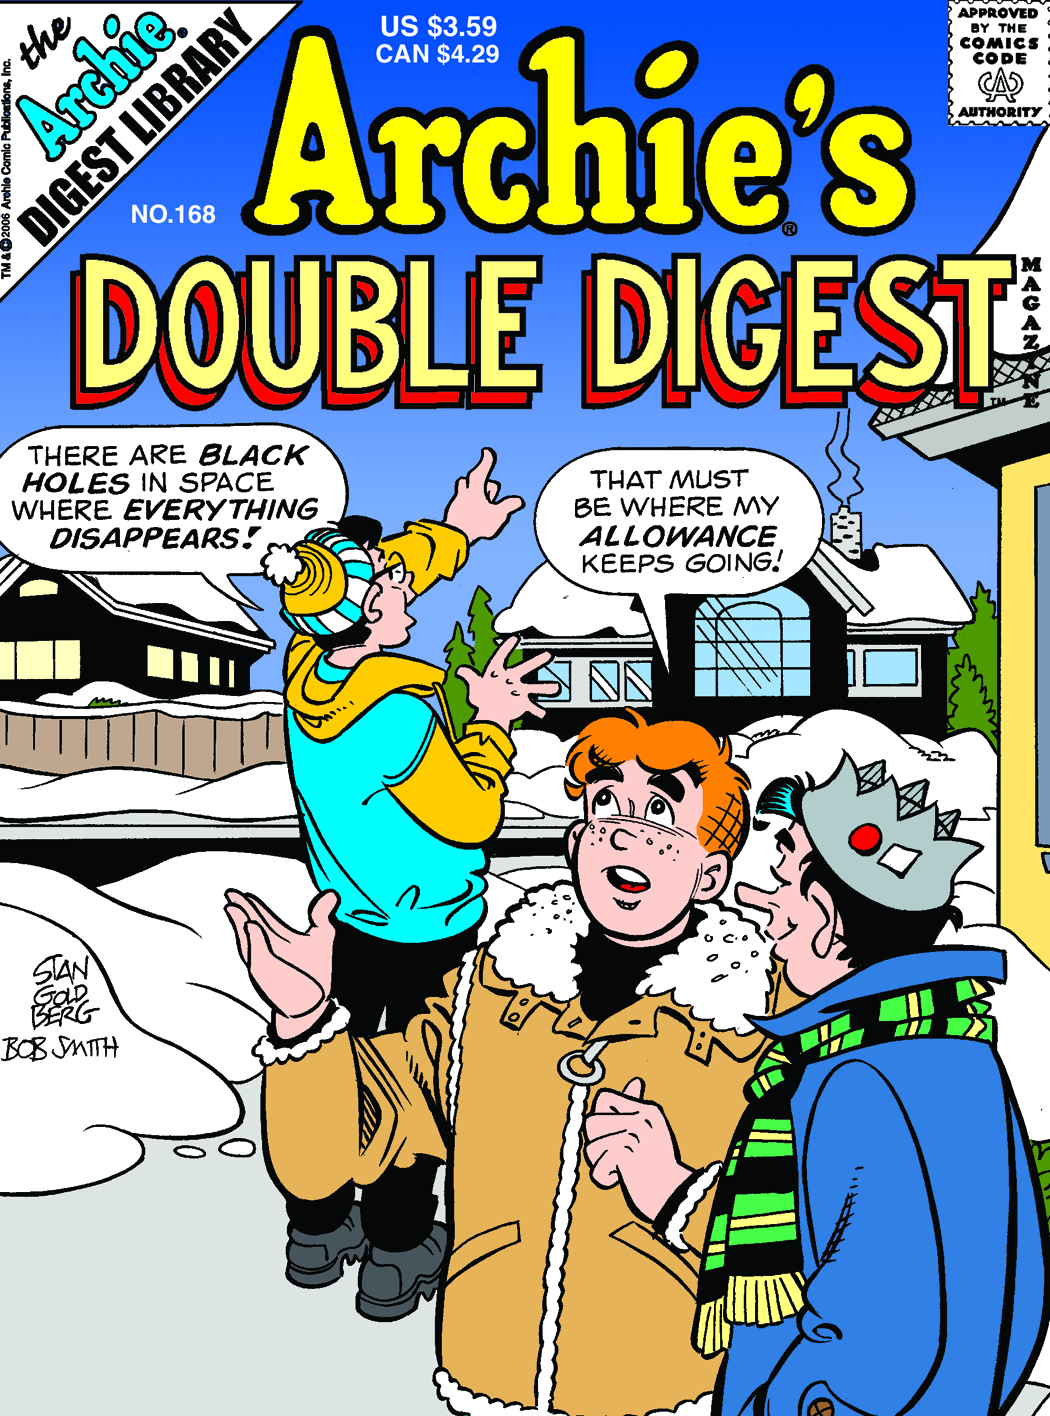 ARCHIE DOUBLE DIGEST #168